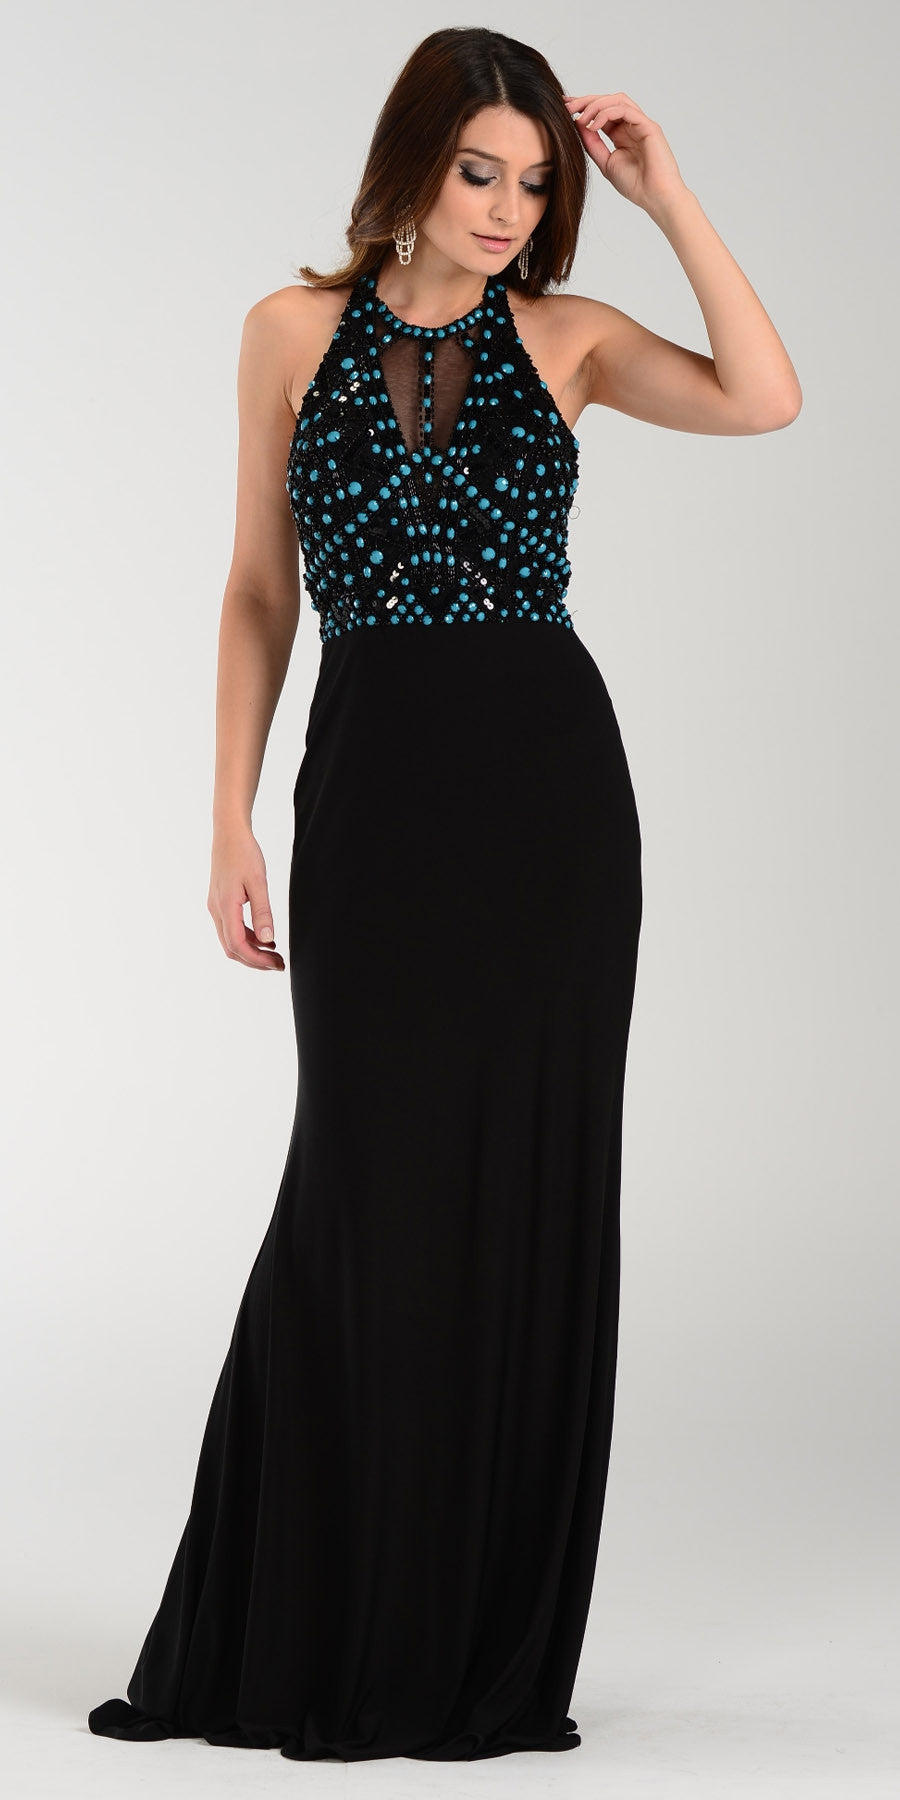 ON SPECIAL LIMITED STOCK - Poly USA 7378 Special Occasion Long Dress Black Halter Strap